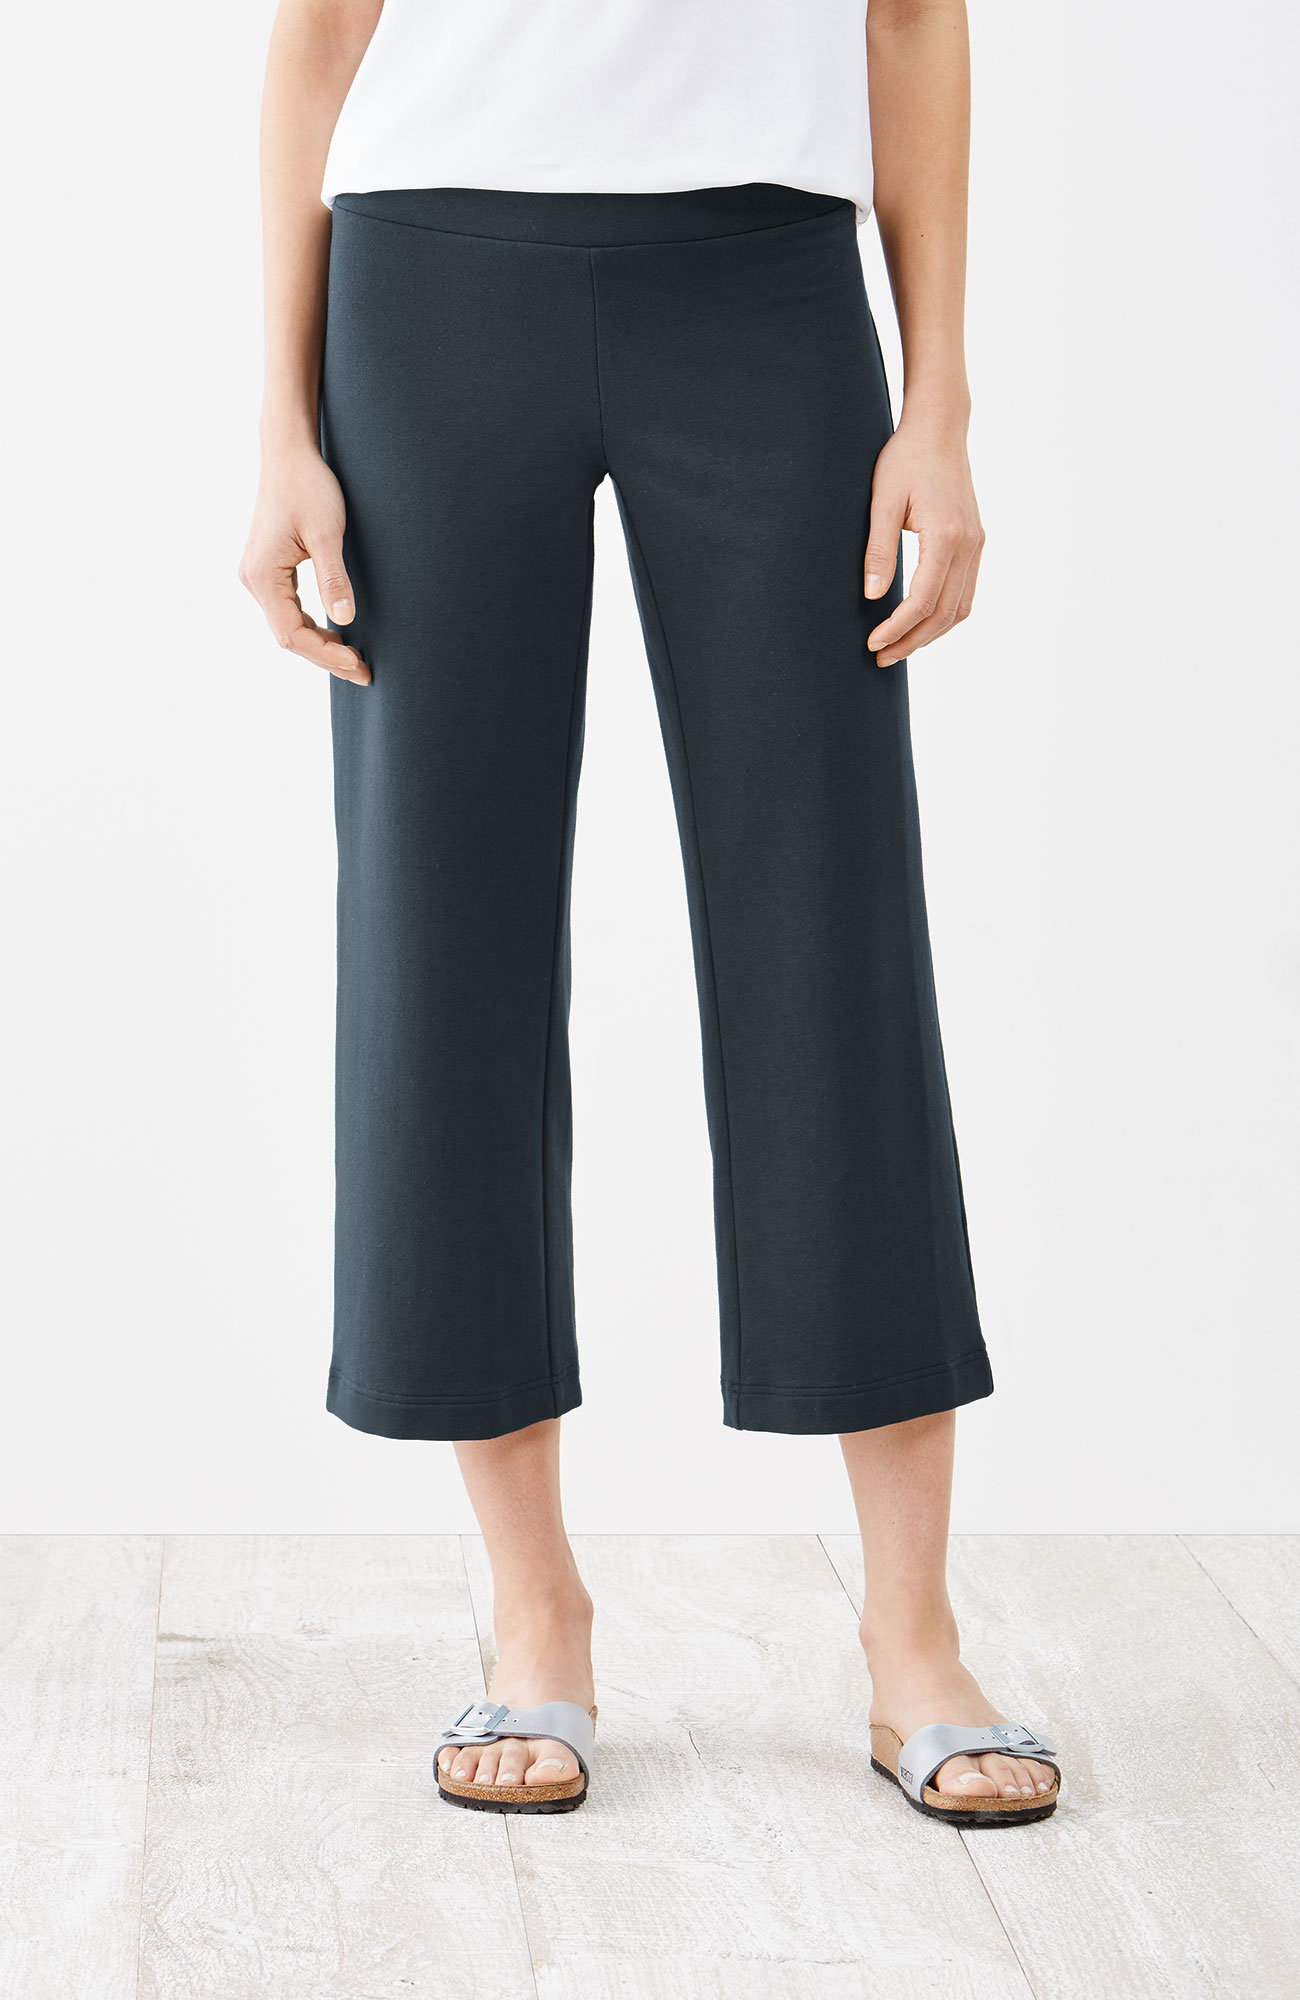 Pure Jill full-leg knit crops